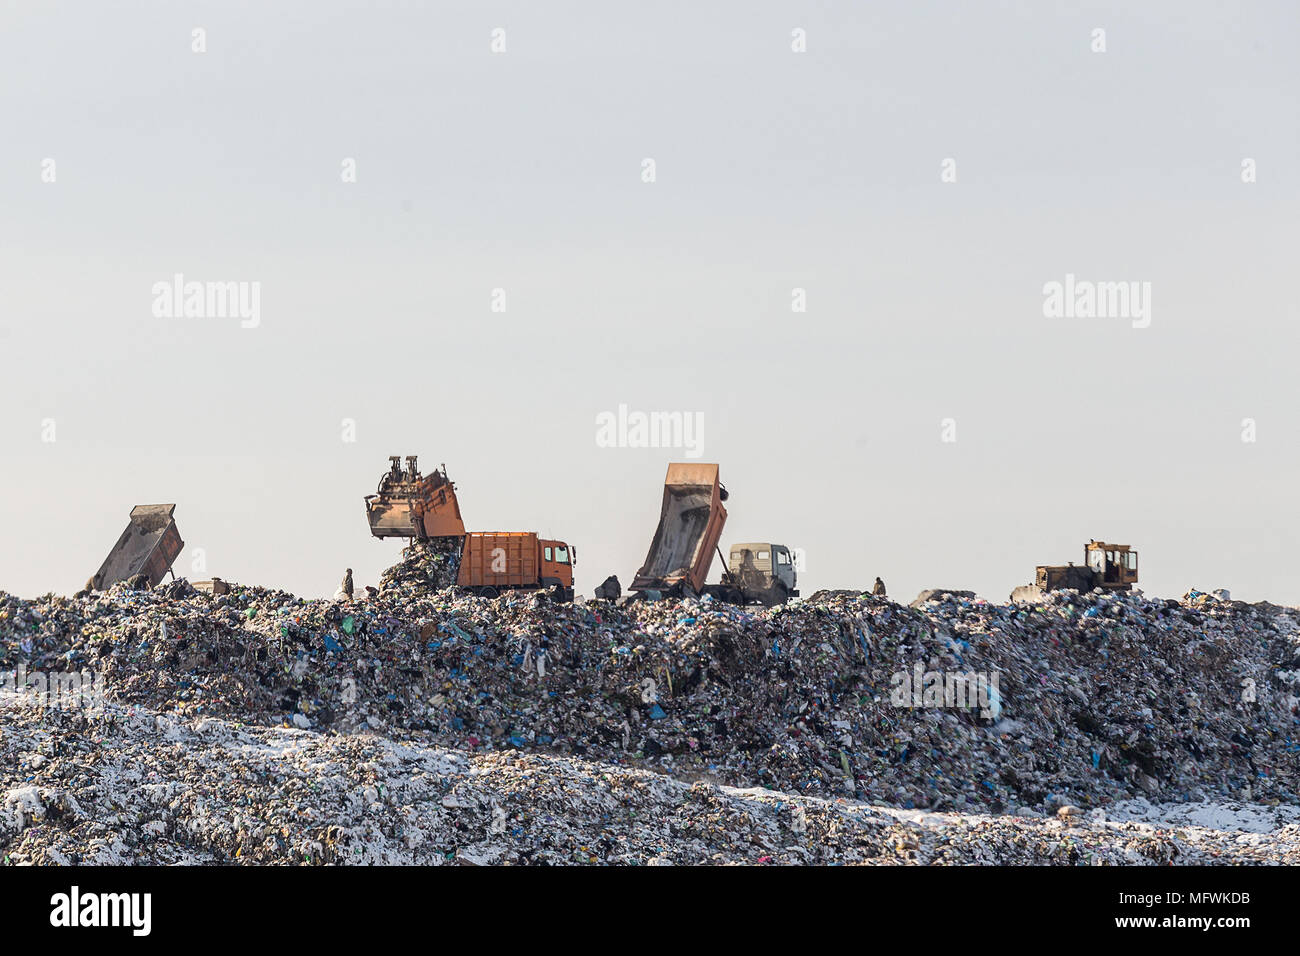 Dump trucks unloading garbage over vast landfill.  Environmental pollution. Outdated method of wasate disposal. Survival of times past - Stock Image